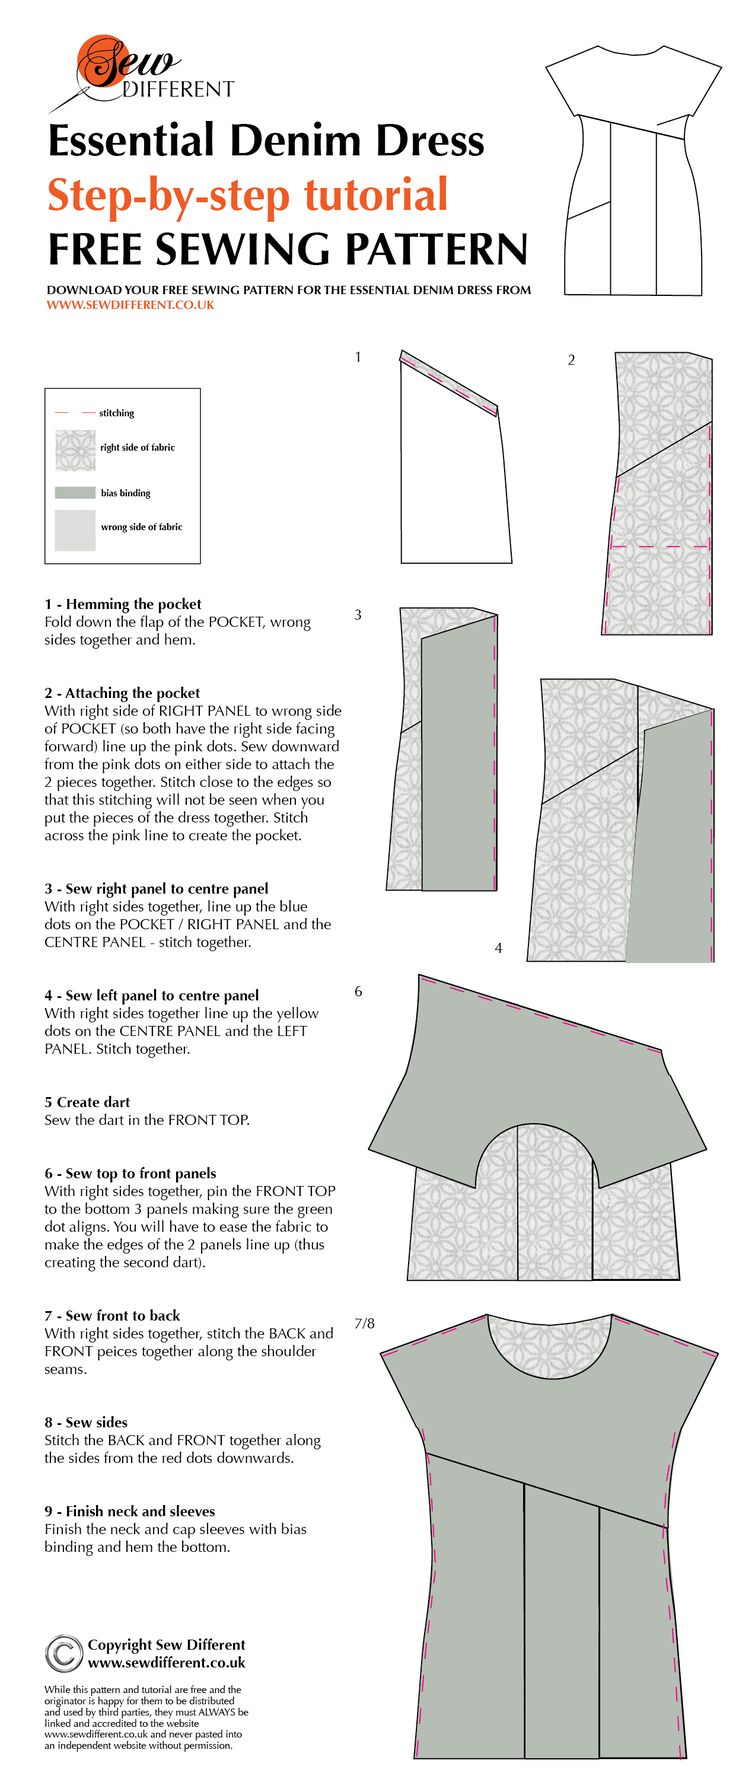 Step-by-step tutorial with diagrams for the Essential Denim Dress. FREE sewing pattern and post full of ideas, photos, tips and fabric info to go with it. Happy sewing!